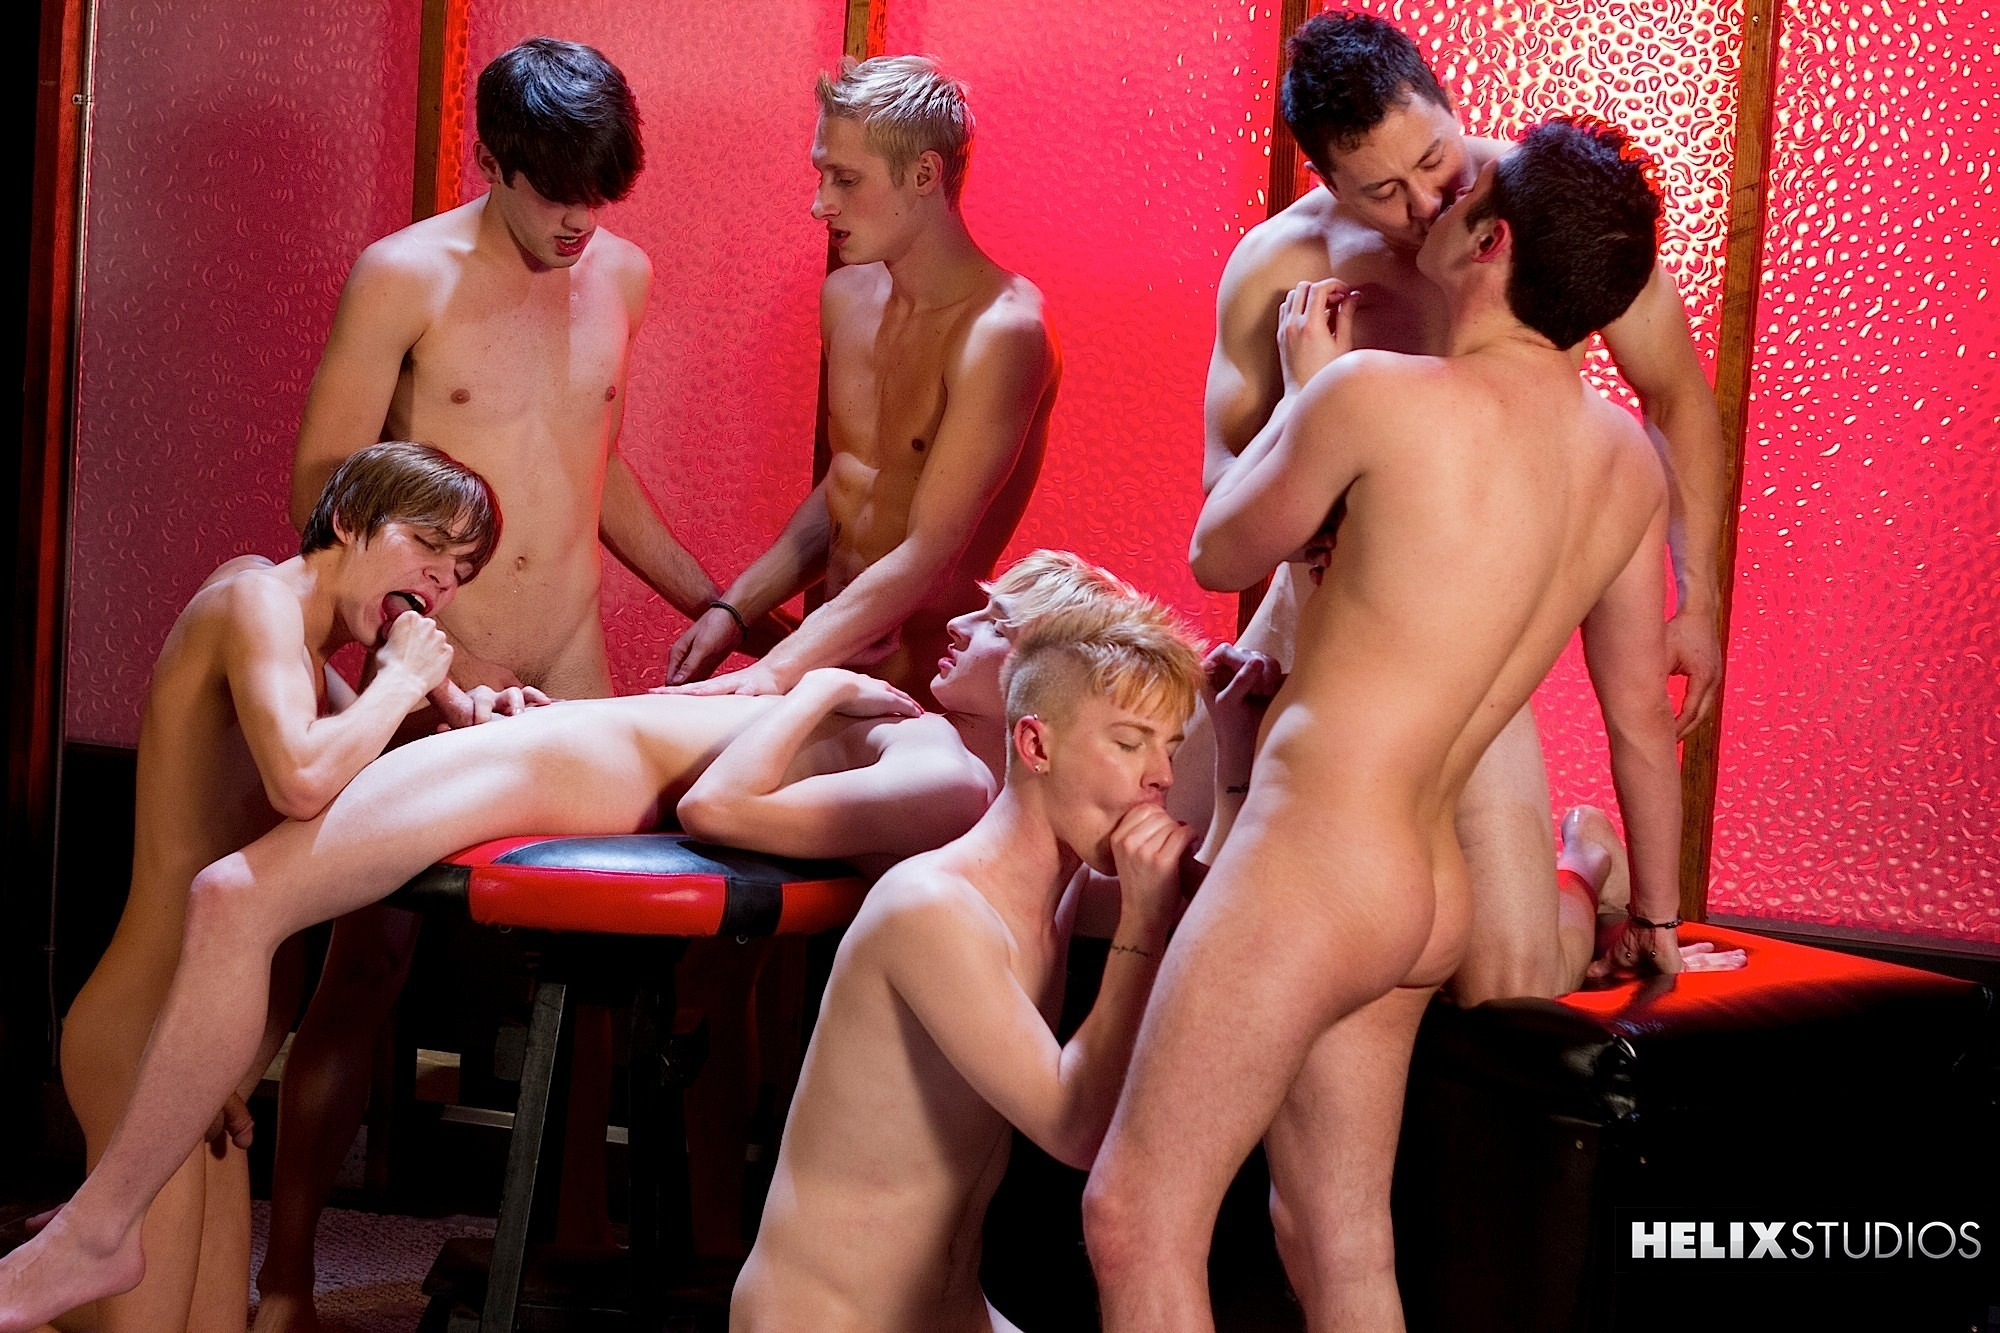 Helix-Studios-Max-Carter-Kyle-Ross-Aiden-Summers-Chase-Young-Dominic-Jones-Jessie-Montgomery-Kyler-Ash-Amateur-Twink-Orgy-21 Huge Cock Amateur Twink Orgy Featuring 7 Hot Amateur Twinks